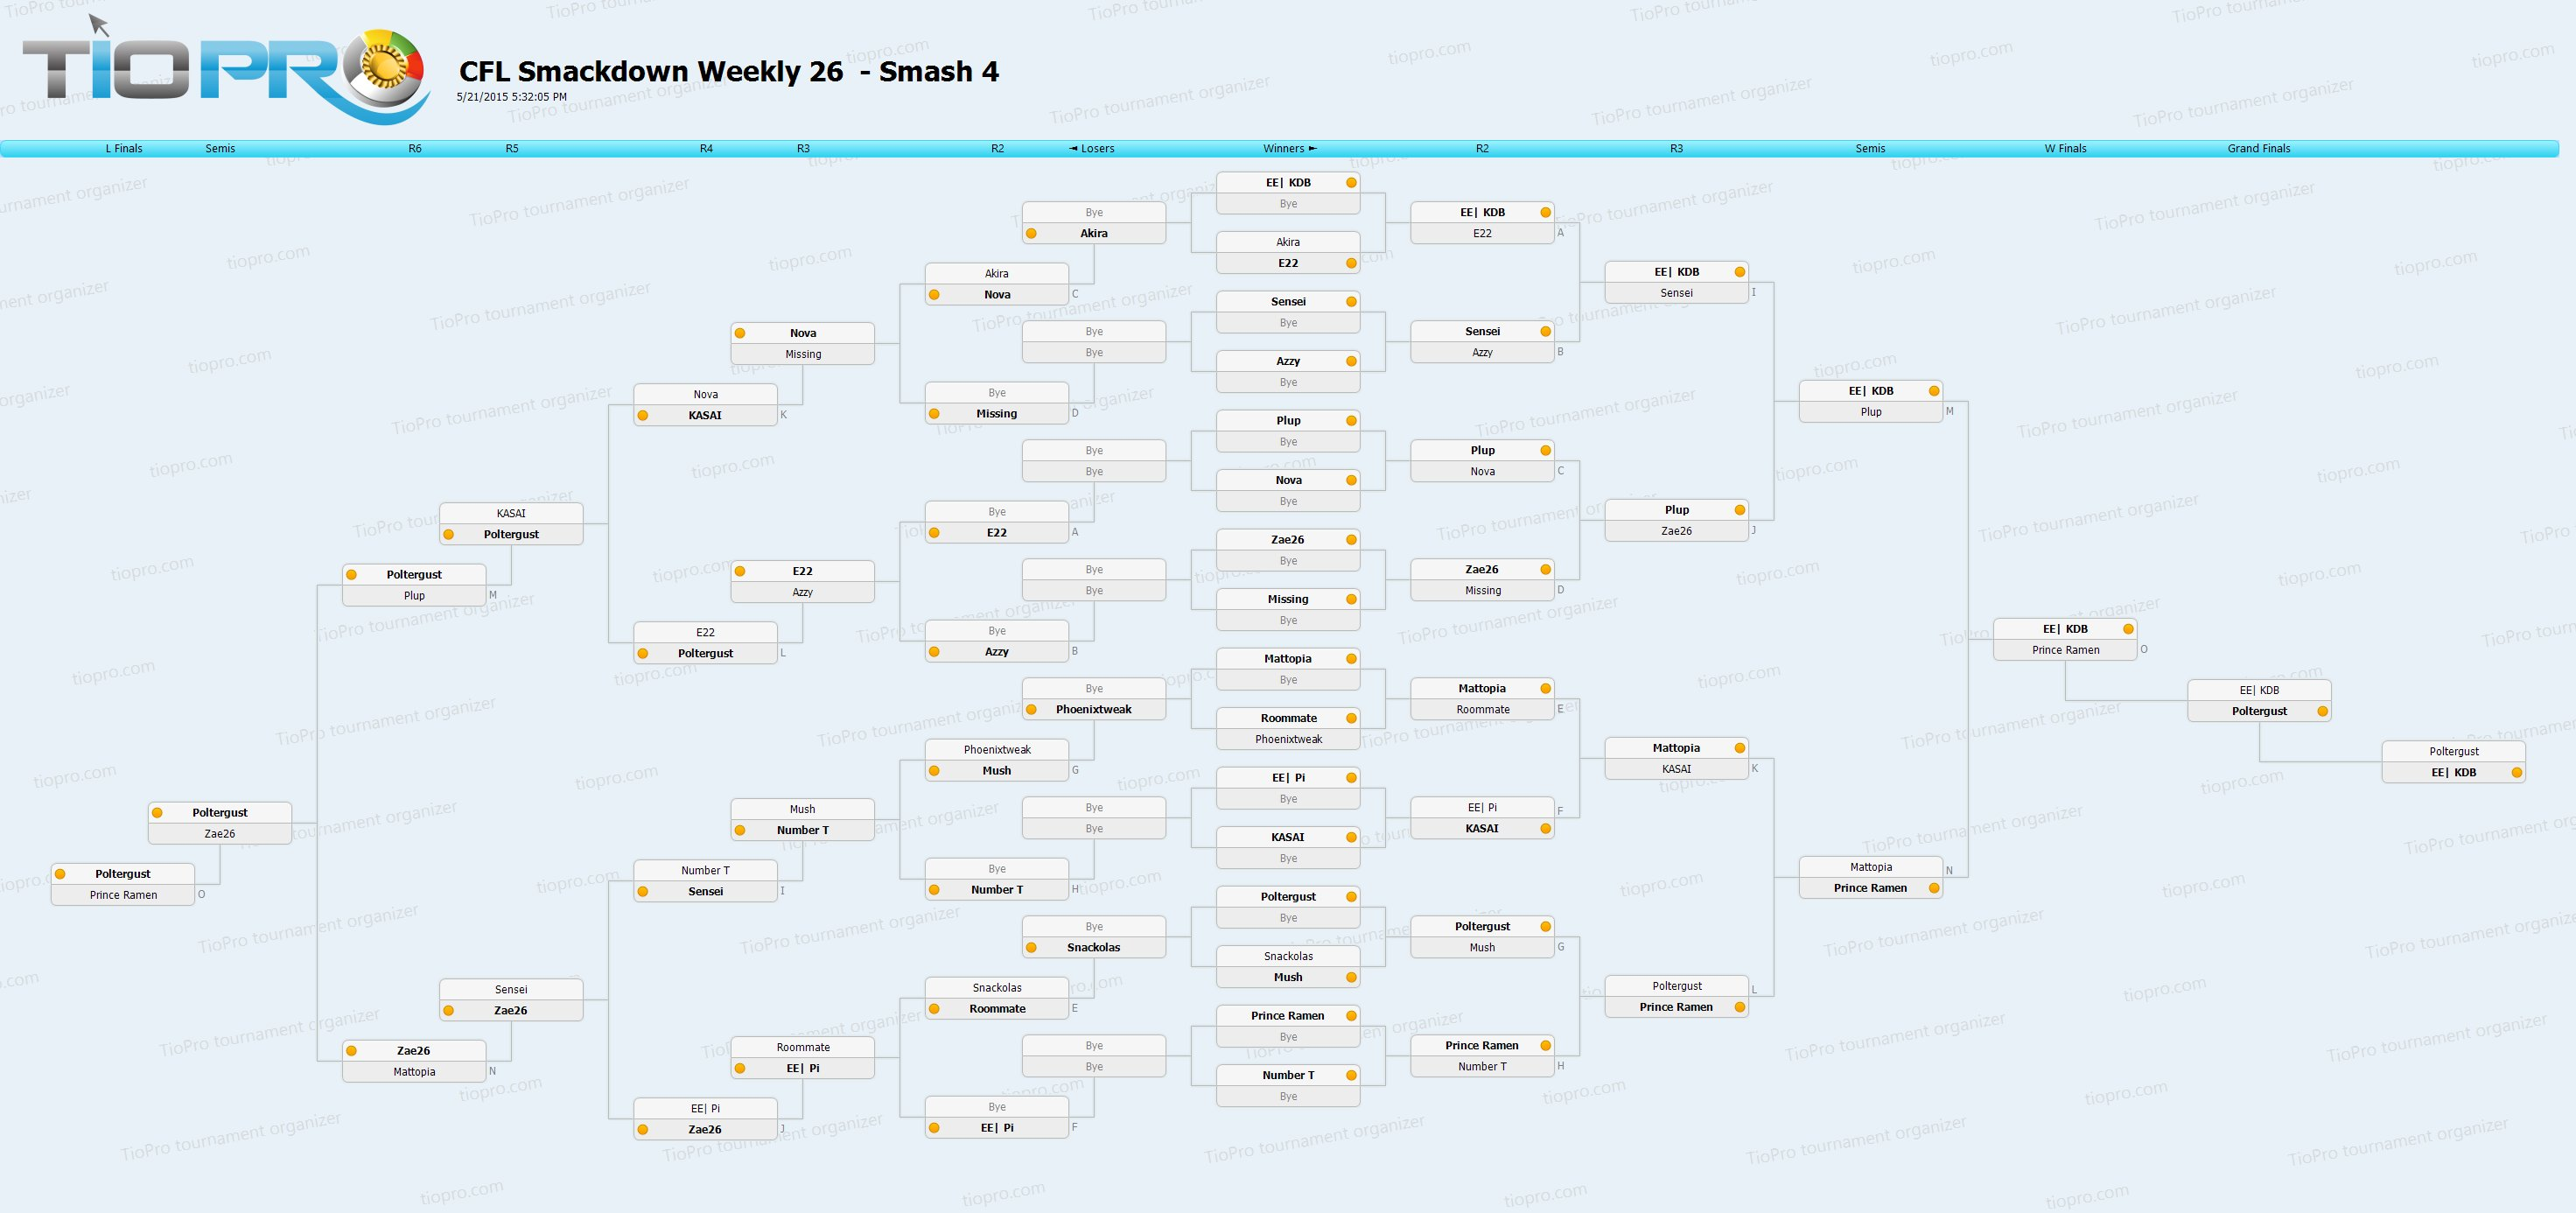 CFL Smackdown Weekly 26 4/21/15: Smash 4 Singles